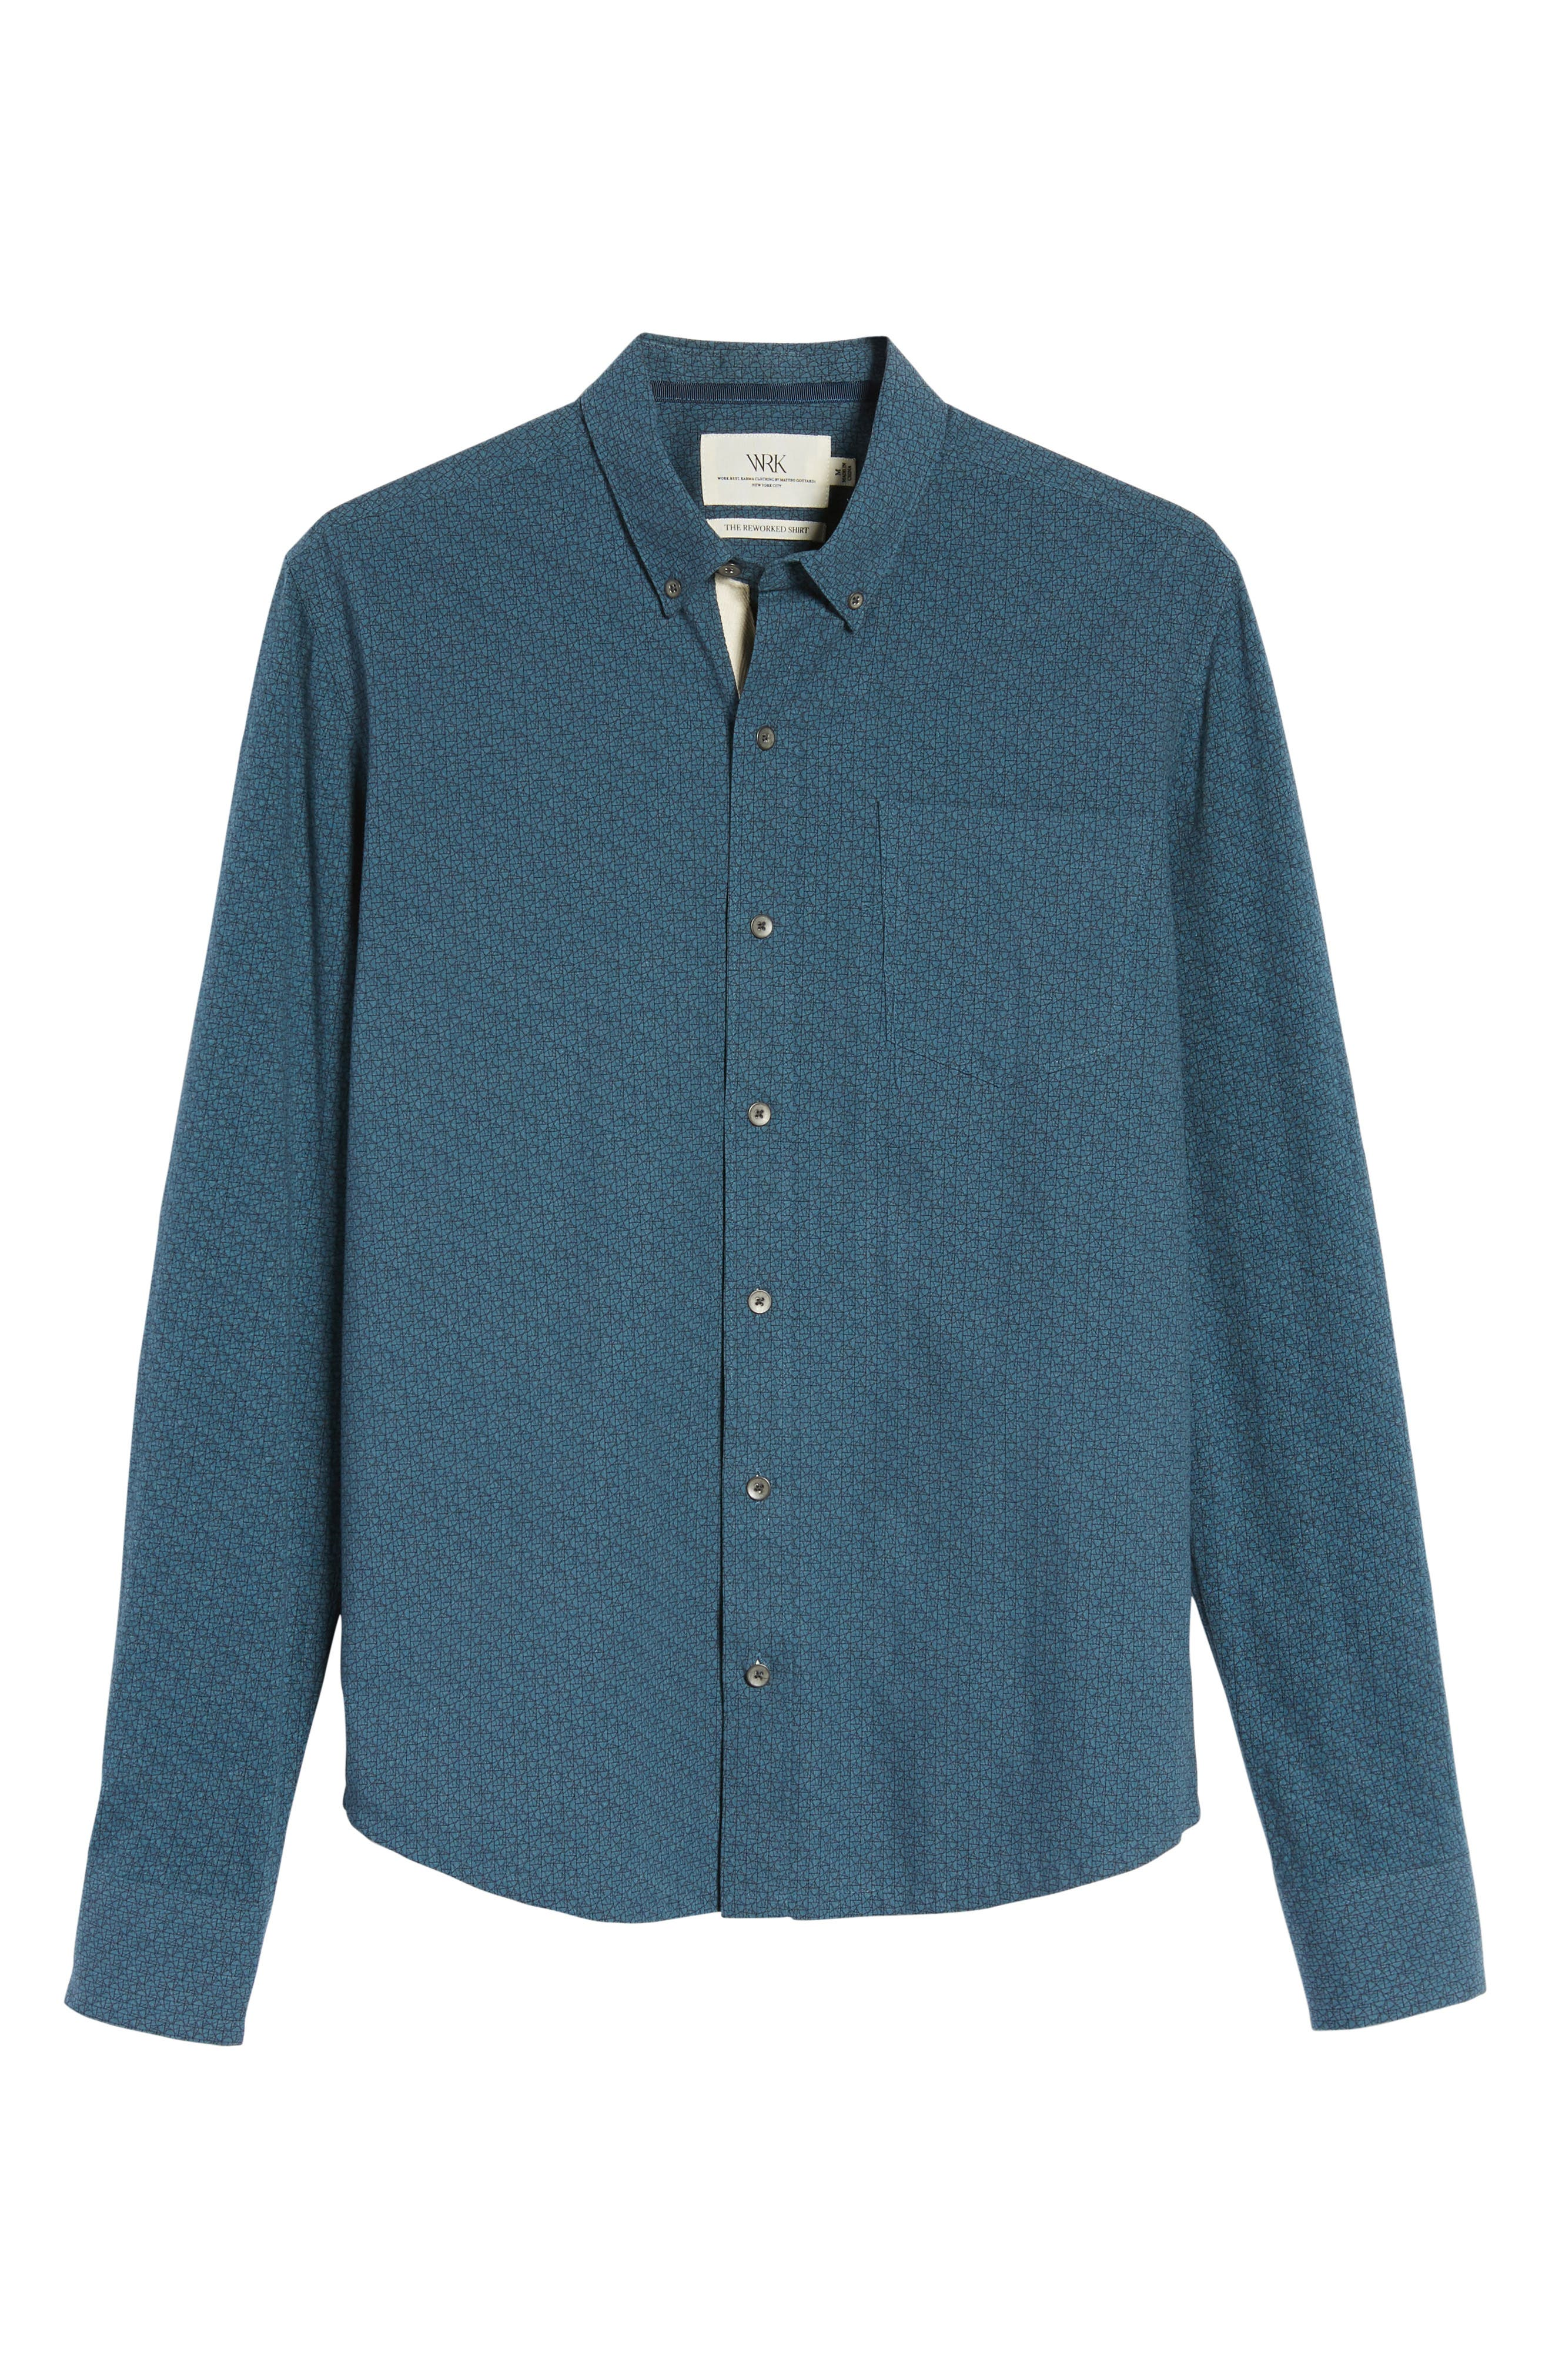 Reworked Cracked Ice Sport Shirt,                             Alternate thumbnail 5, color,                             Teal